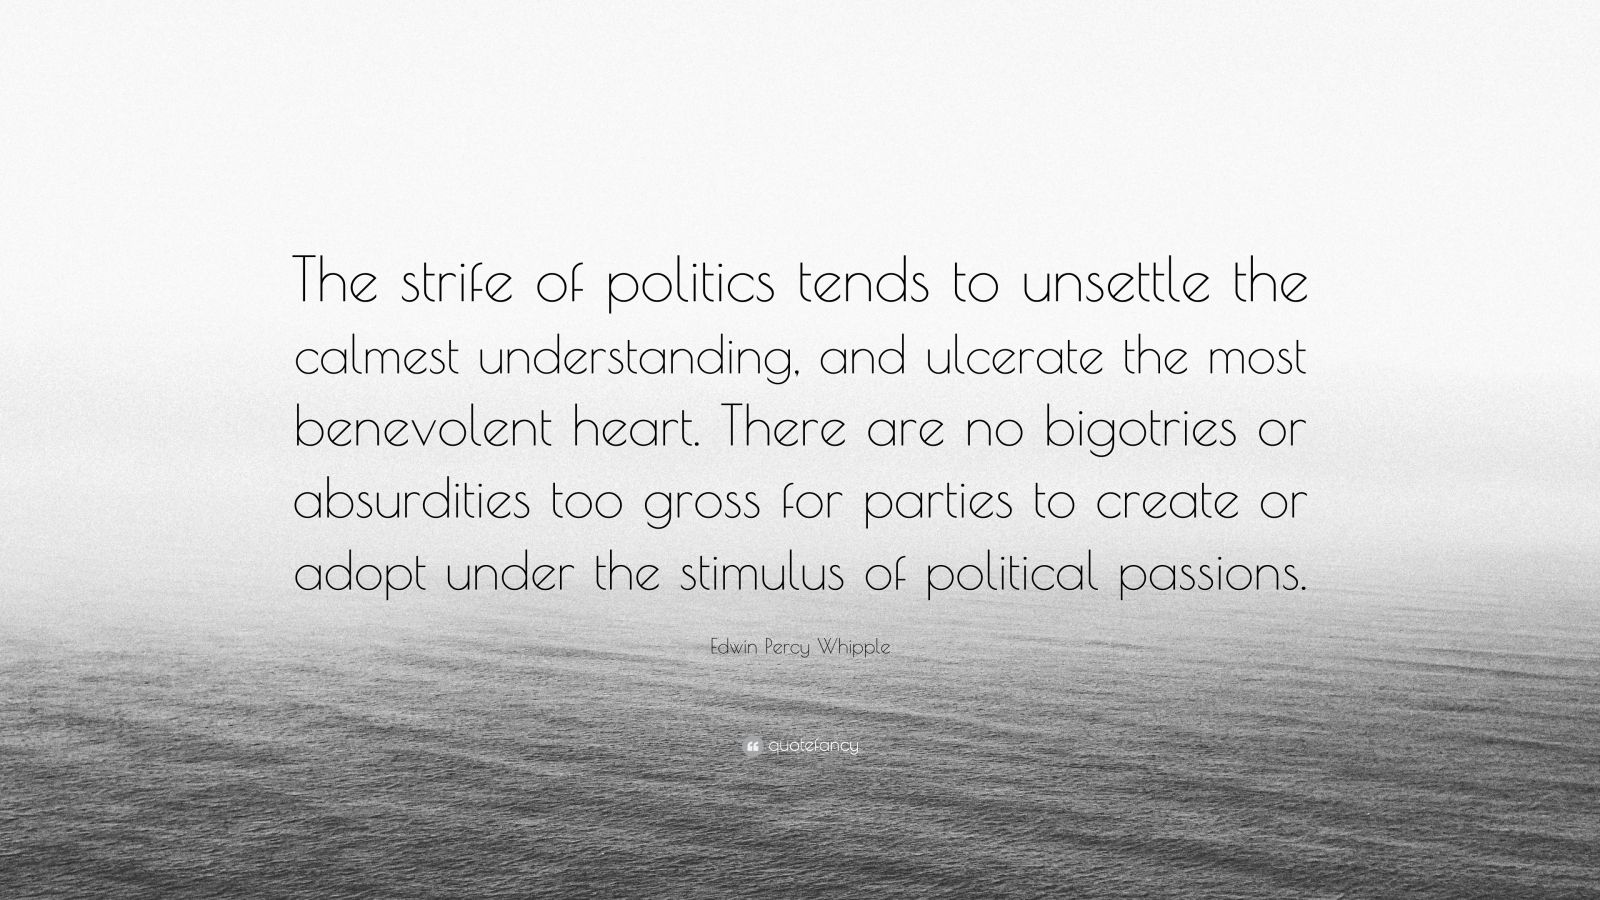 """Edwin Percy Whipple Quote: """"The strife of politics tends to unsettle the calmest understanding, and ulcerate the most benevolent heart. There are no bigotries or absurdities too gross for parties to create or adopt under the stimulus of political passions."""""""